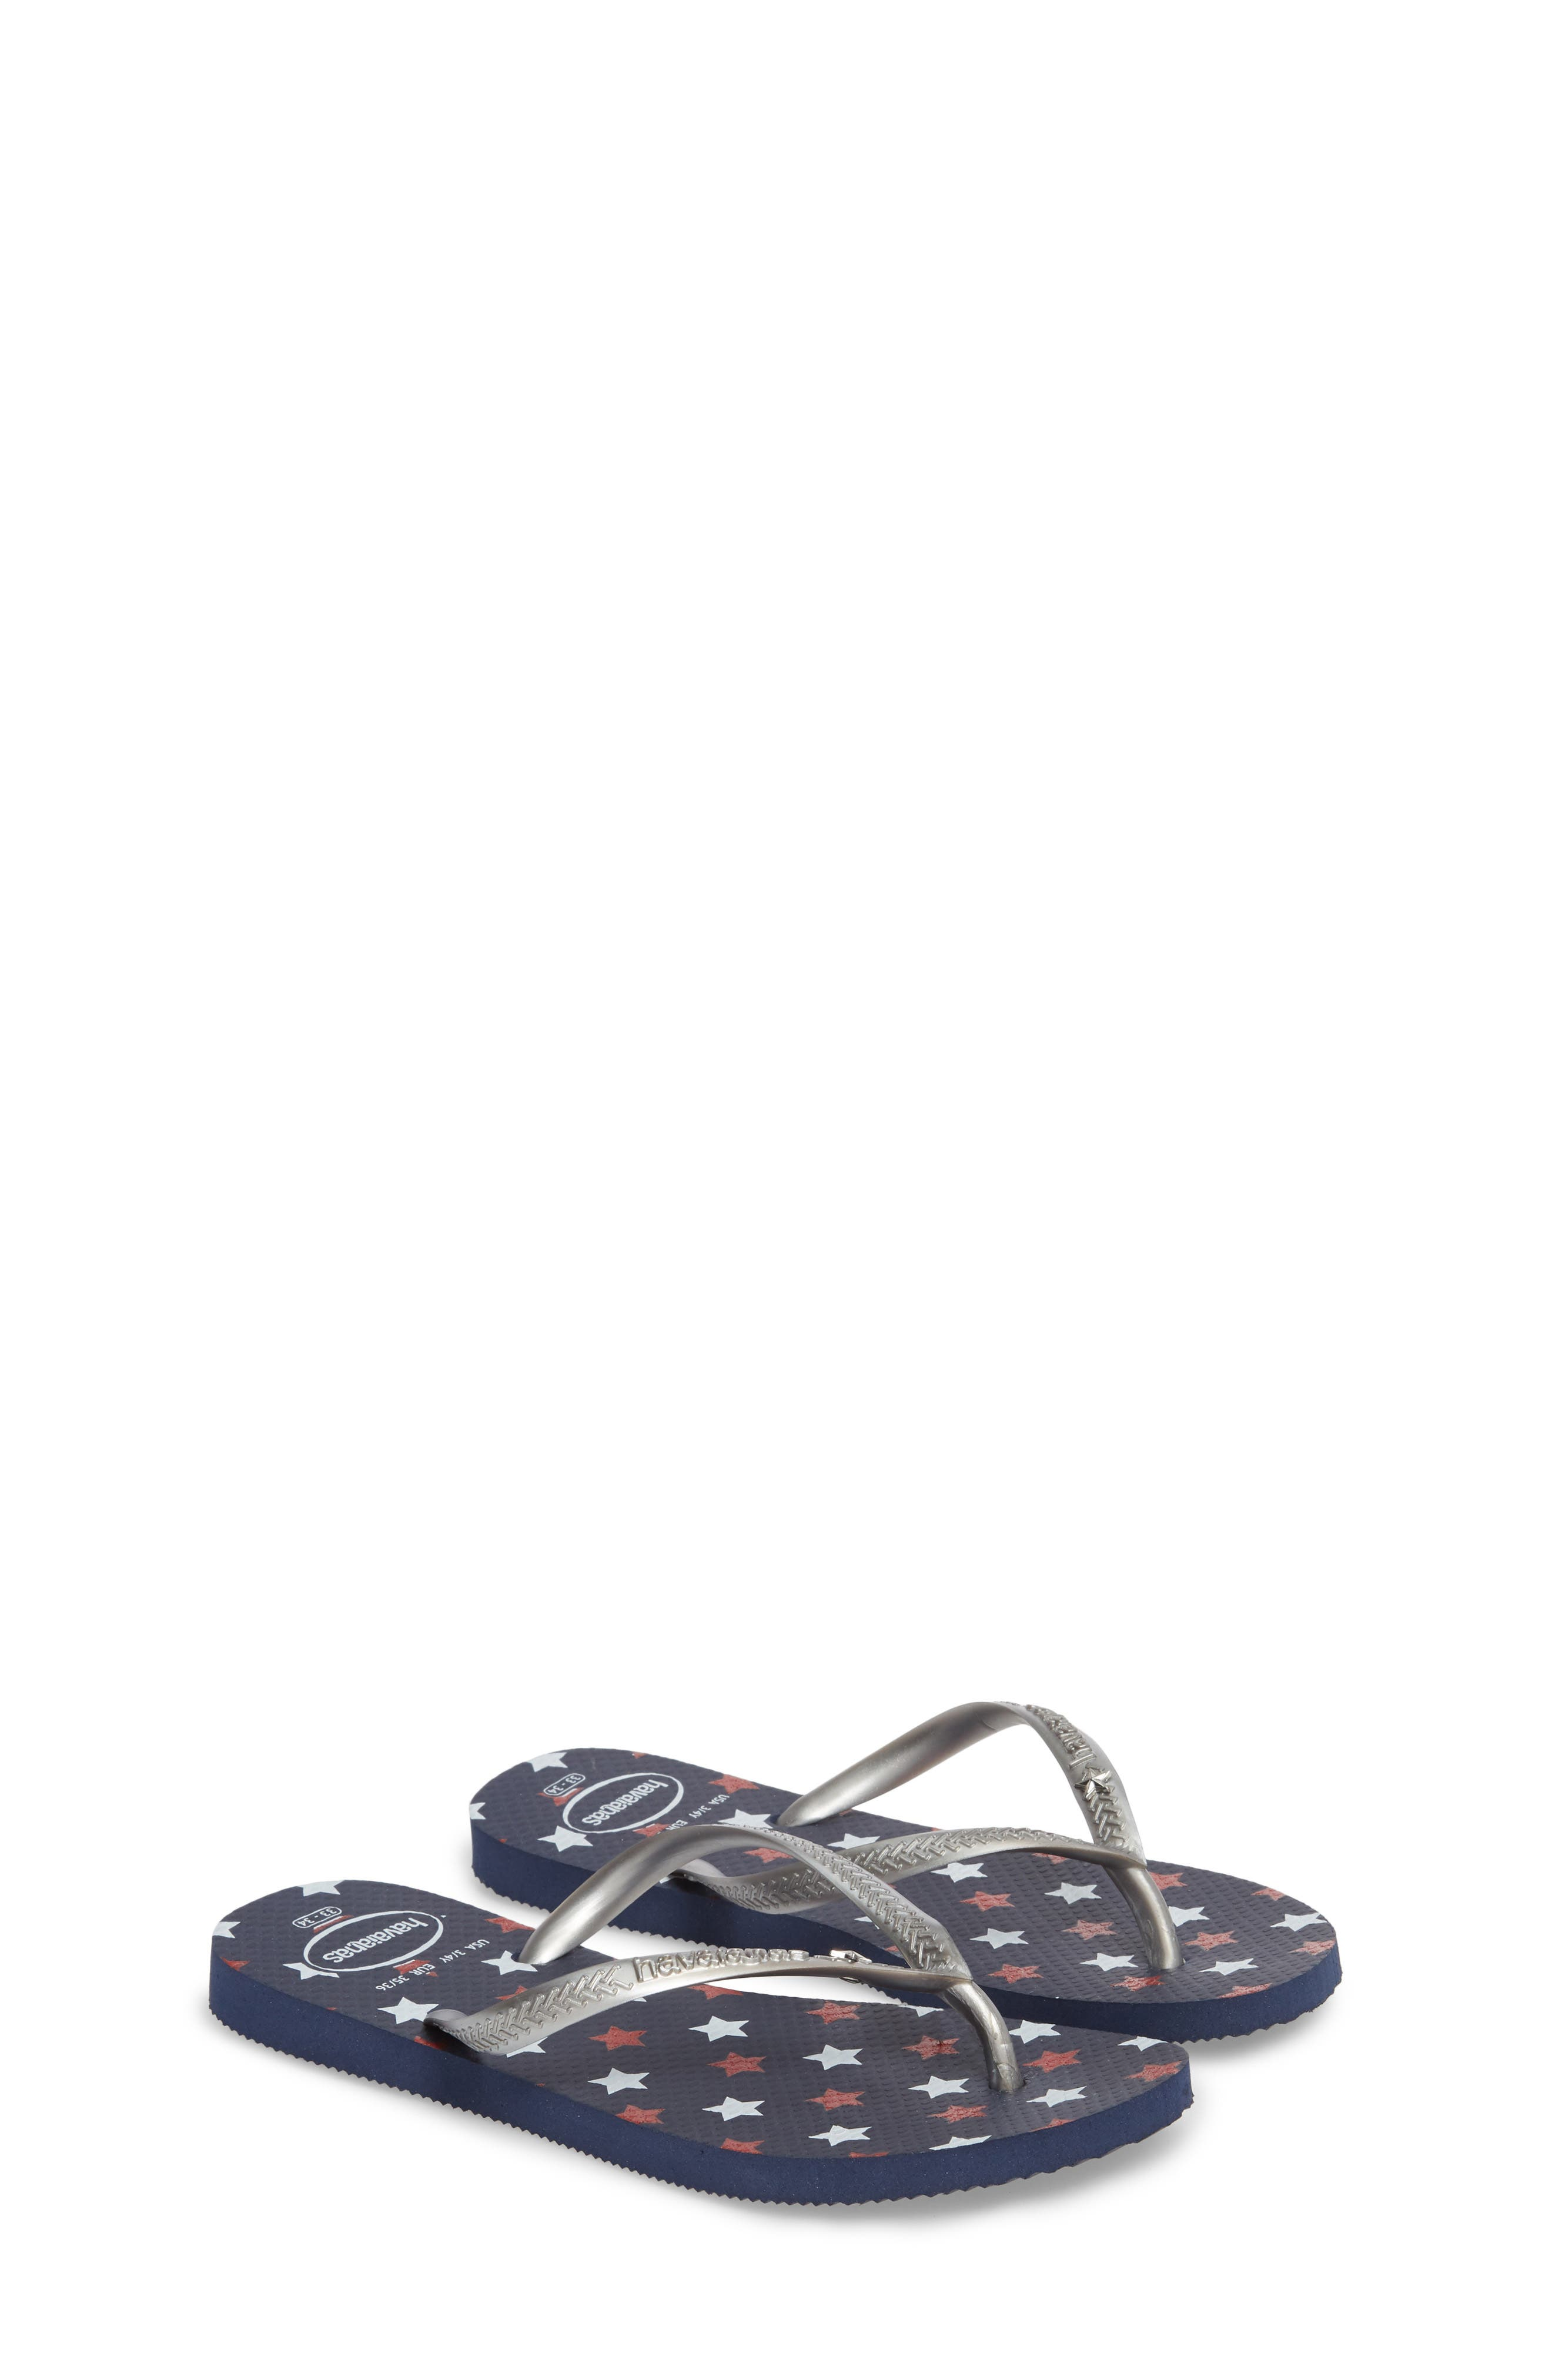 Havianas Slim Stars Glitter Flip Flop,                             Main thumbnail 1, color,                             Navy Blue